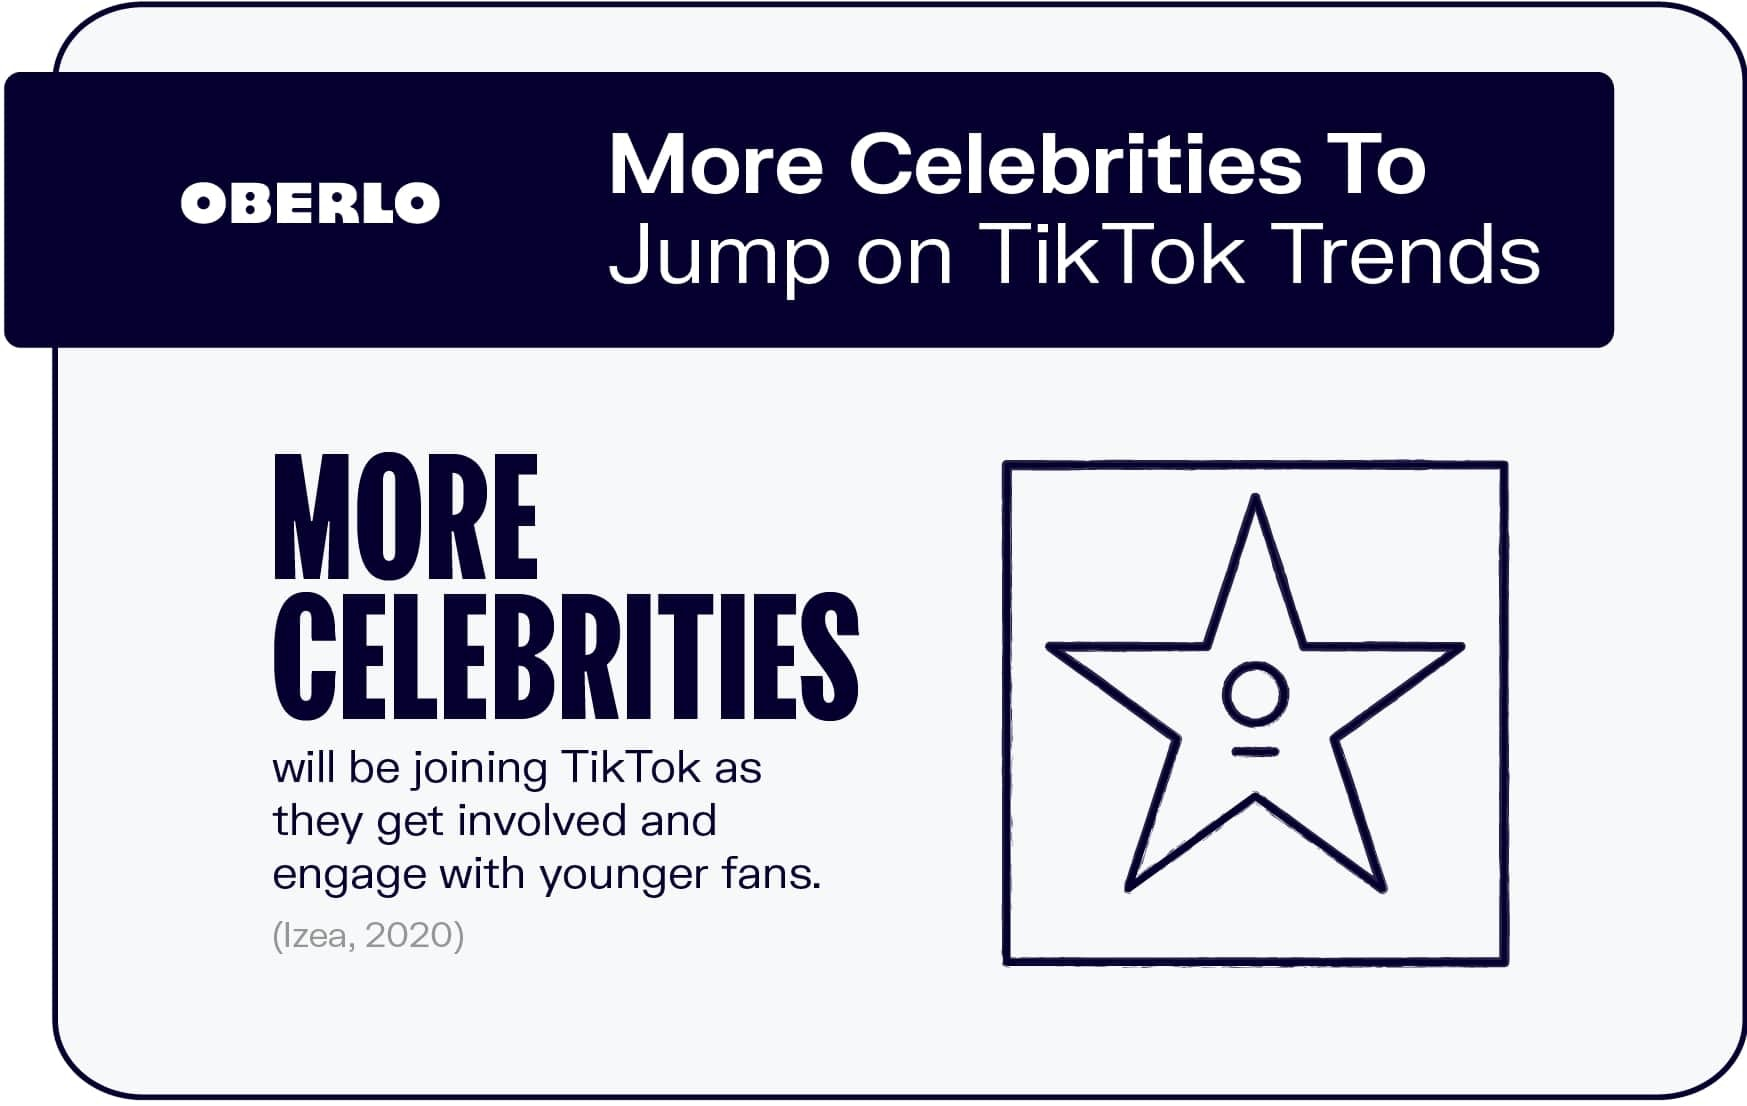 More Celebrities To Jump on TikTok Trends